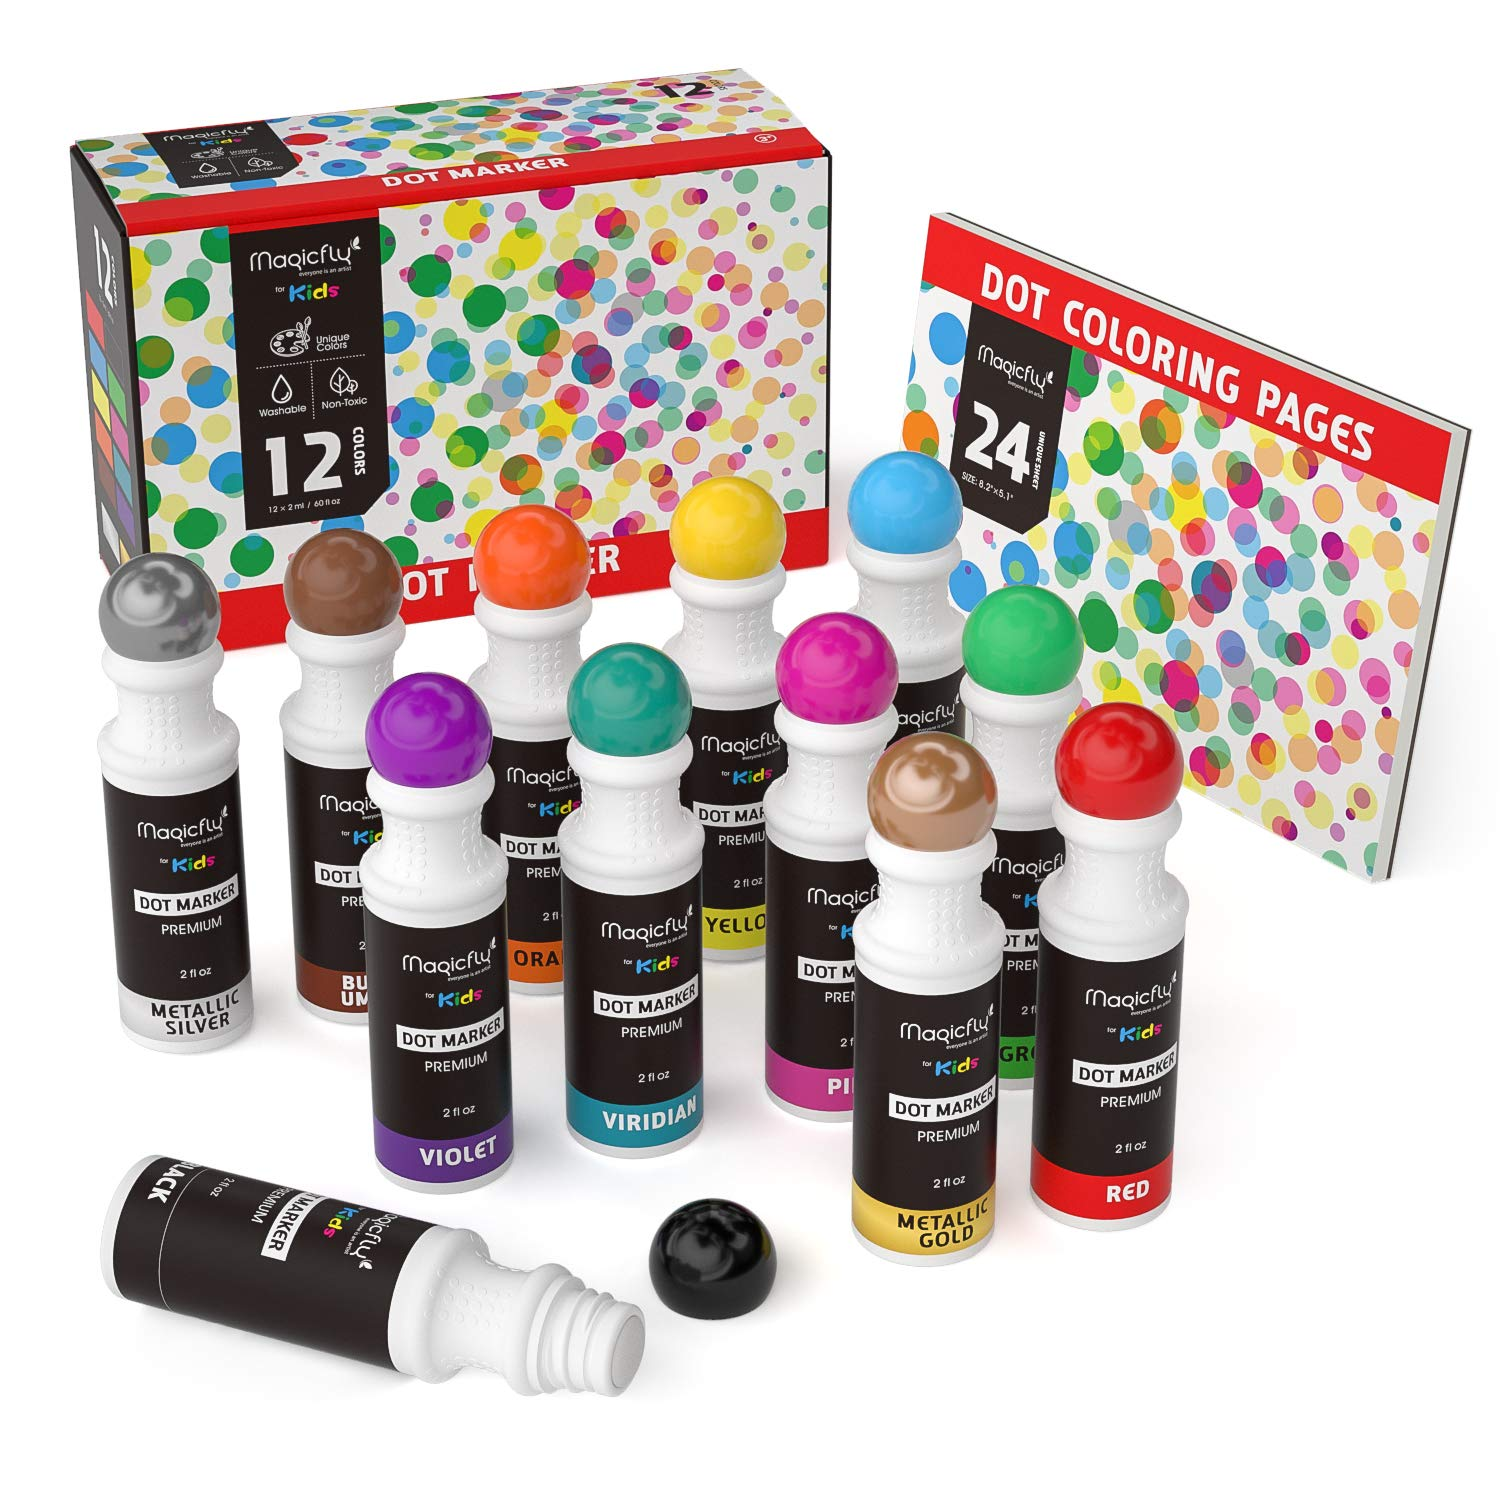 Washable Dot Markers, Magicfly 12 Colors Bingo Daubers with Free Dot Coloring Book for Kids, Non-Toxic Water-Based Dab Marker for Toddlers, Dauber Marker & Preschool by Magicfly